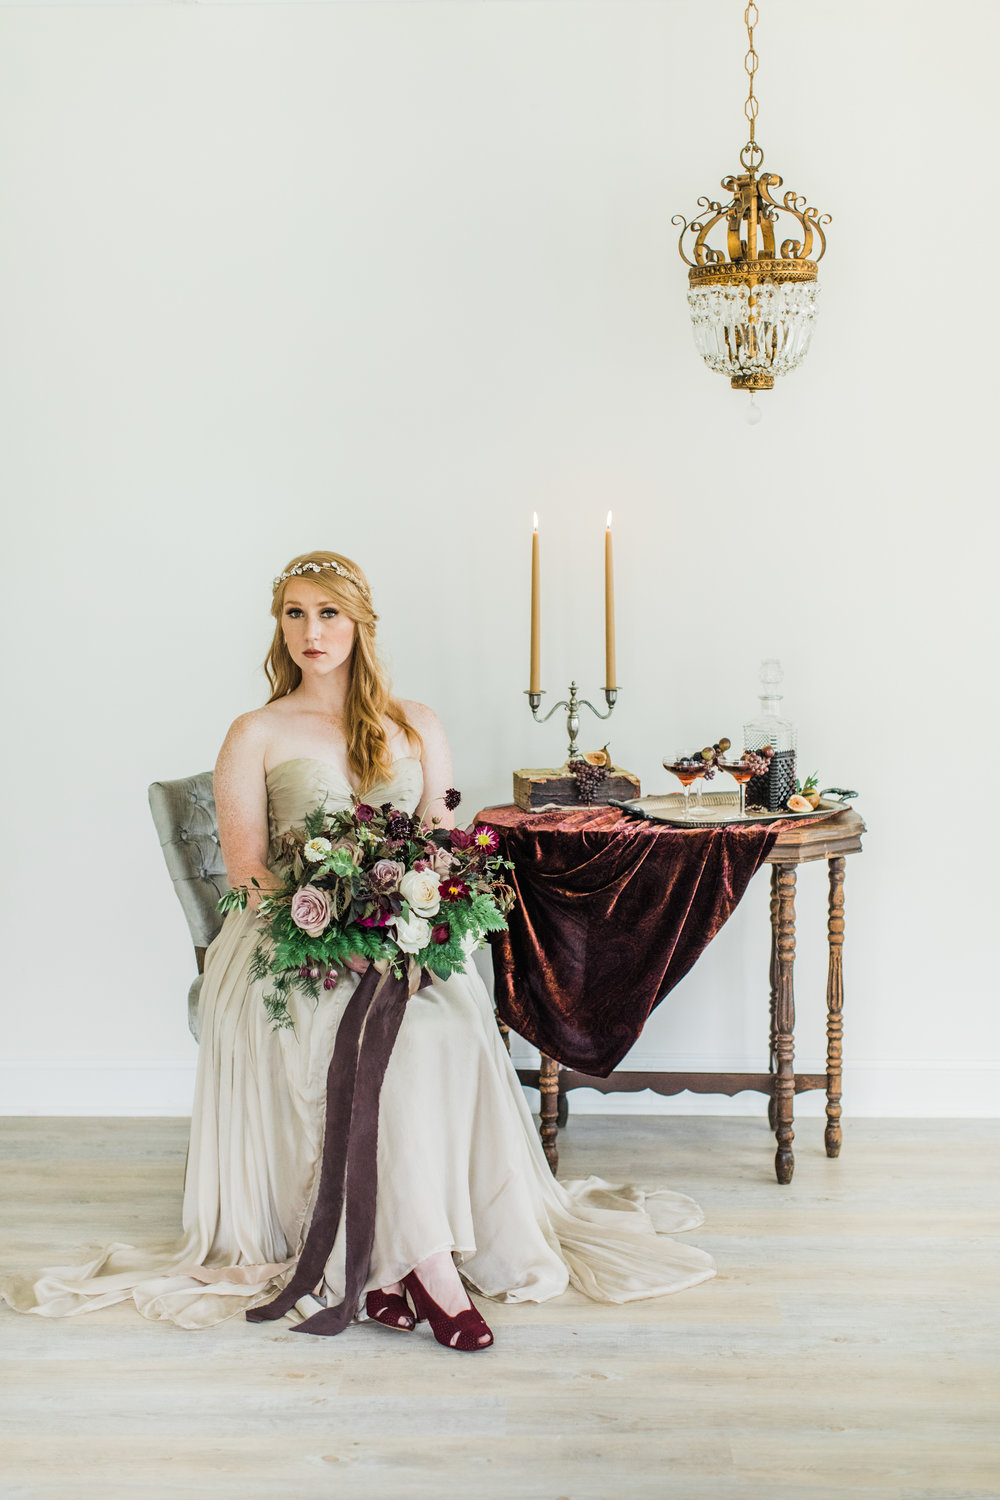 Princess perfection. Styling by jennifer of {feather + oak}, photography by Sarah Sidwell Photography, florals by Emily Kennedy of Kennedy Occasions, dress from LVD Bridal.